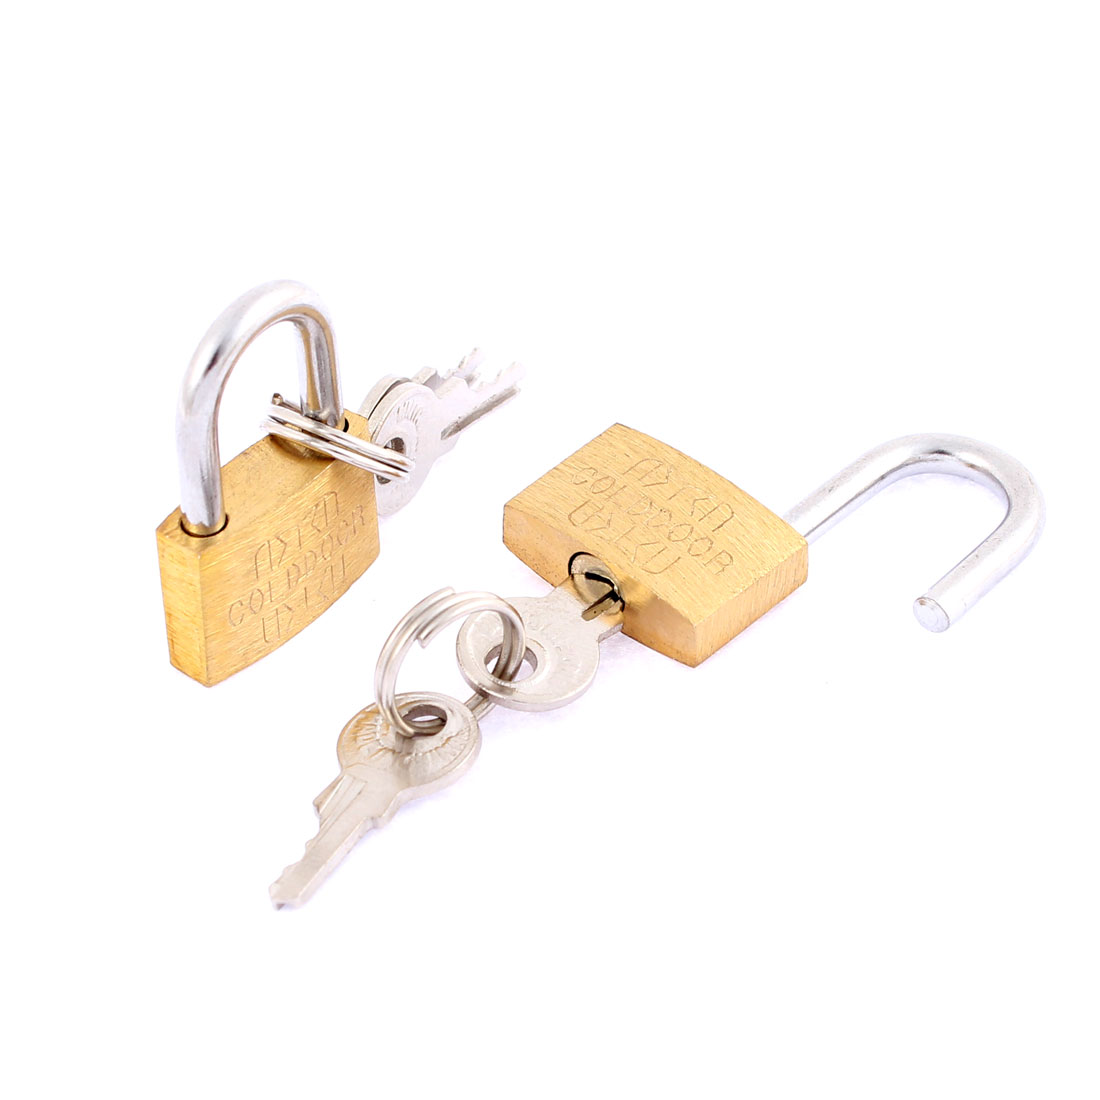 Luggage Jewelry Boxes Cabinet Security Padlock Locks Brass Tone 2pcs w Keys